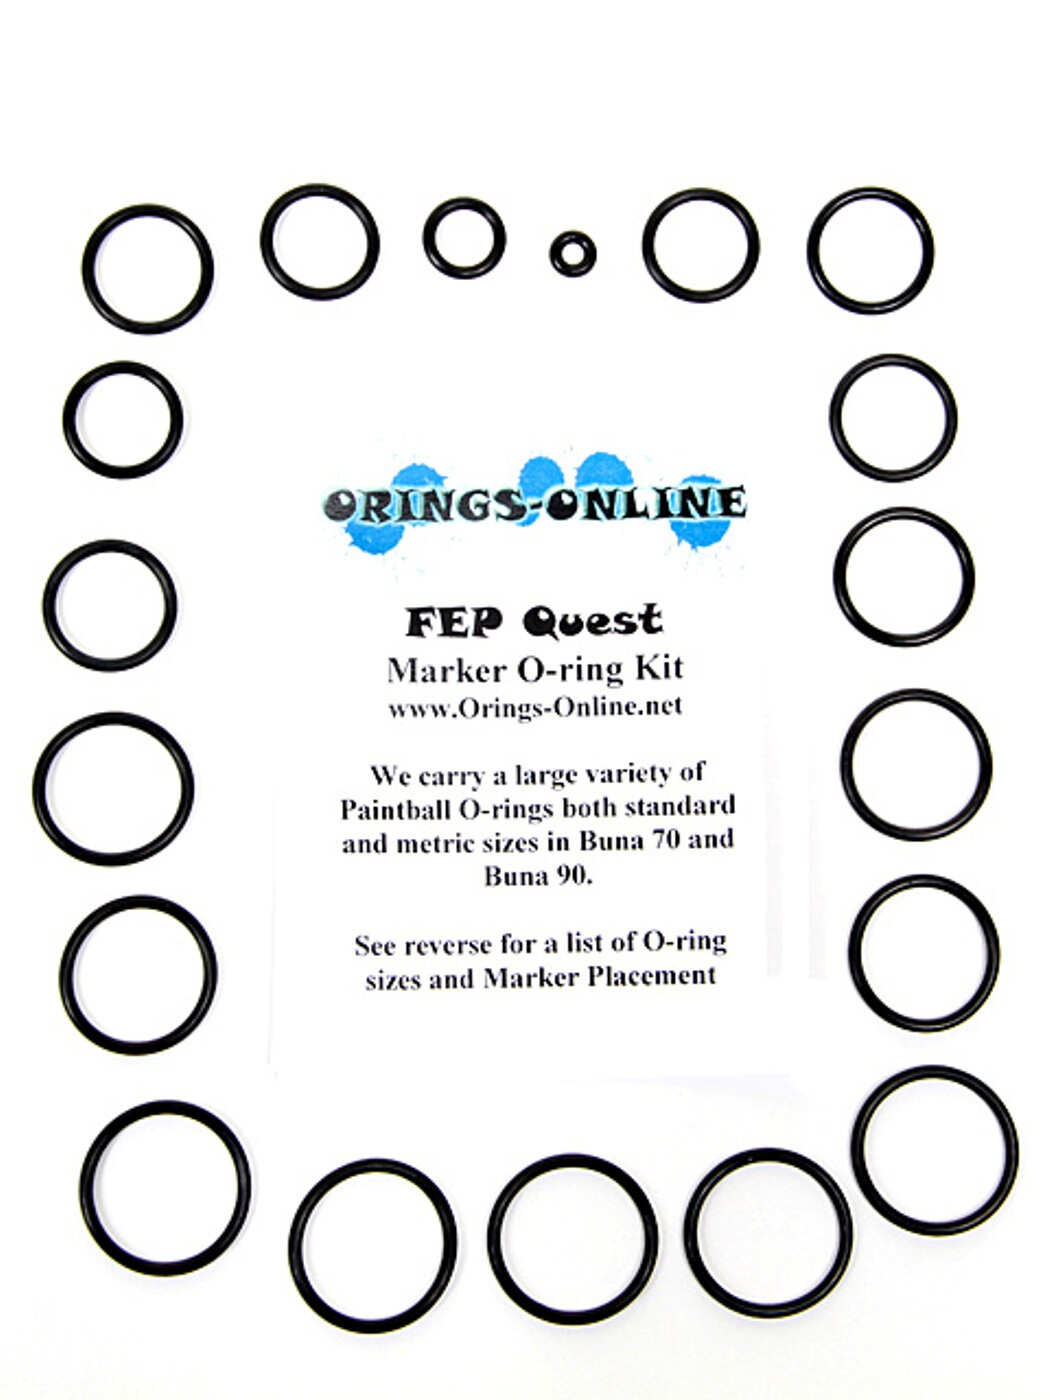 FEP Quest Marker O-ring Kit